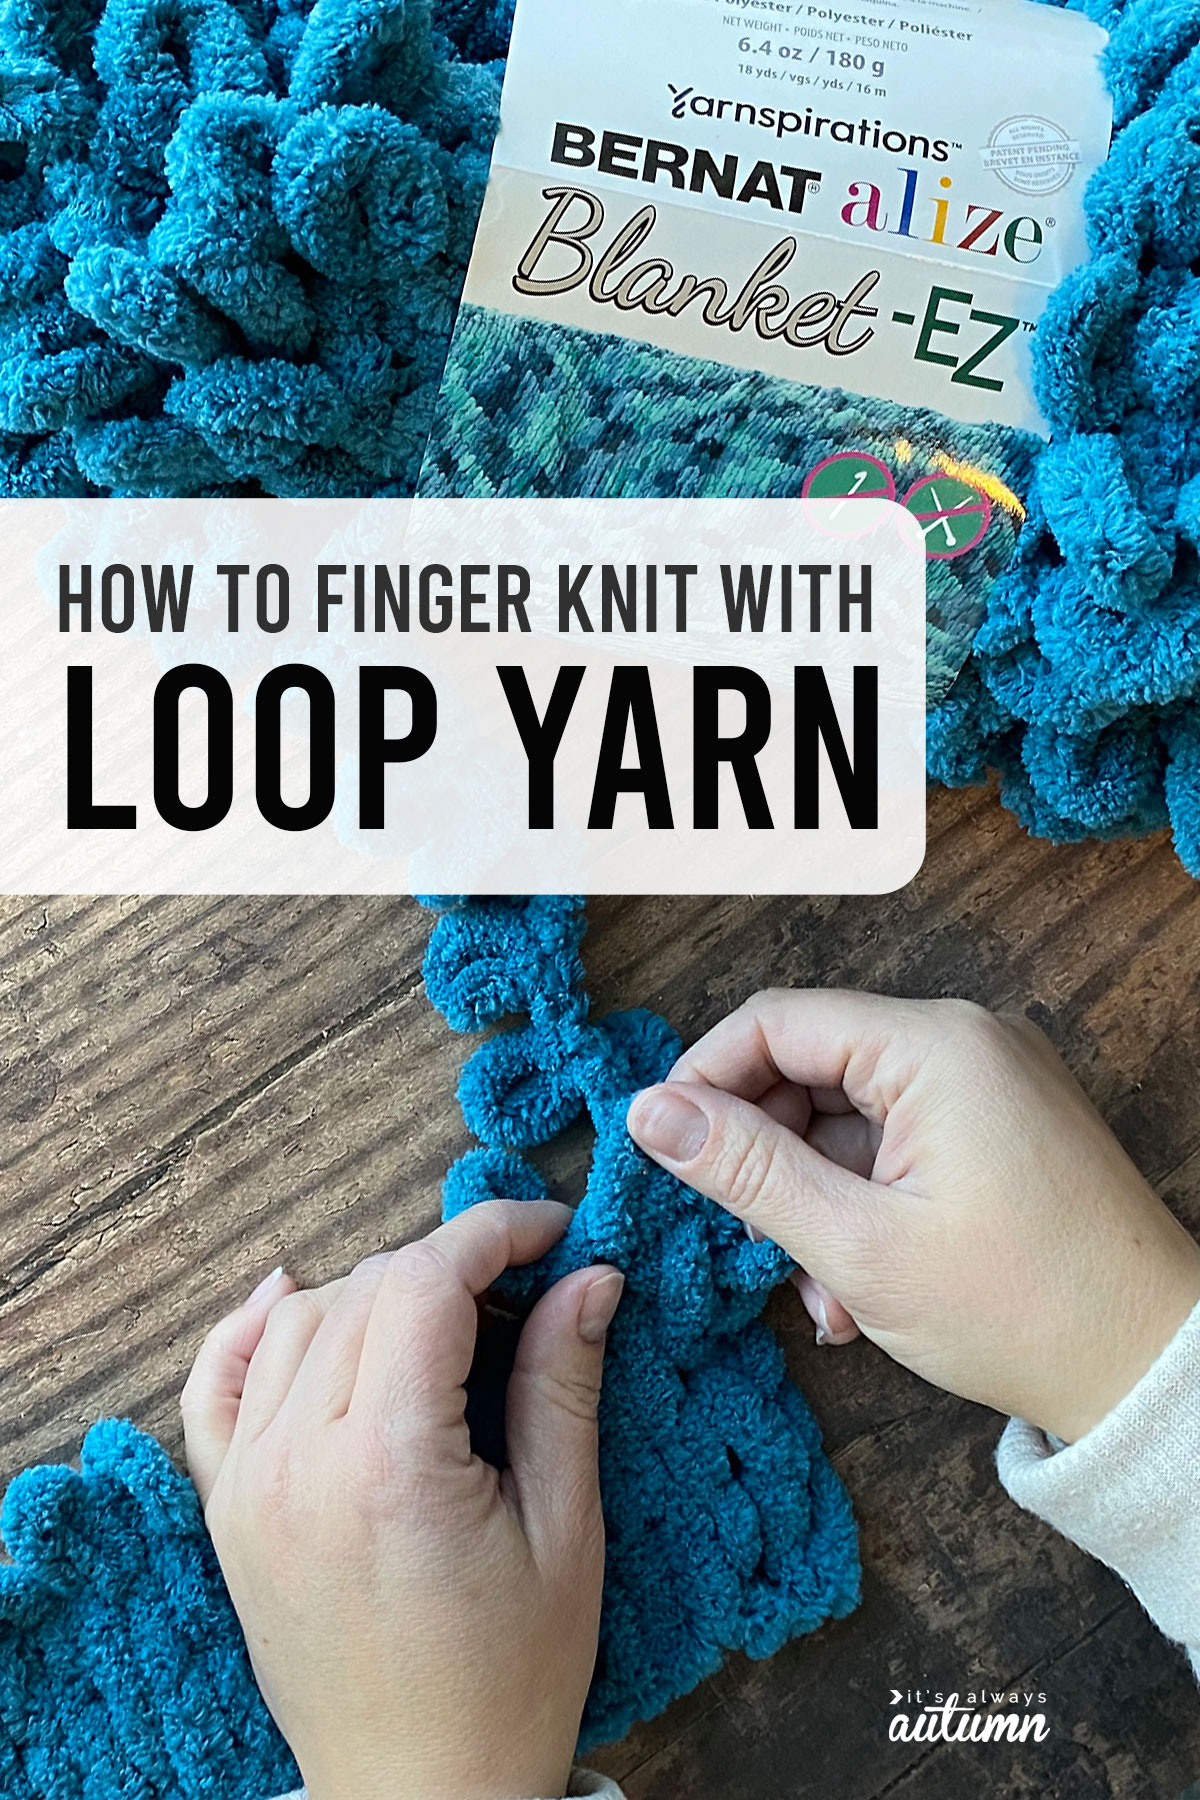 How to finger knit with loop yarn; hands working with turquoise loop yarn